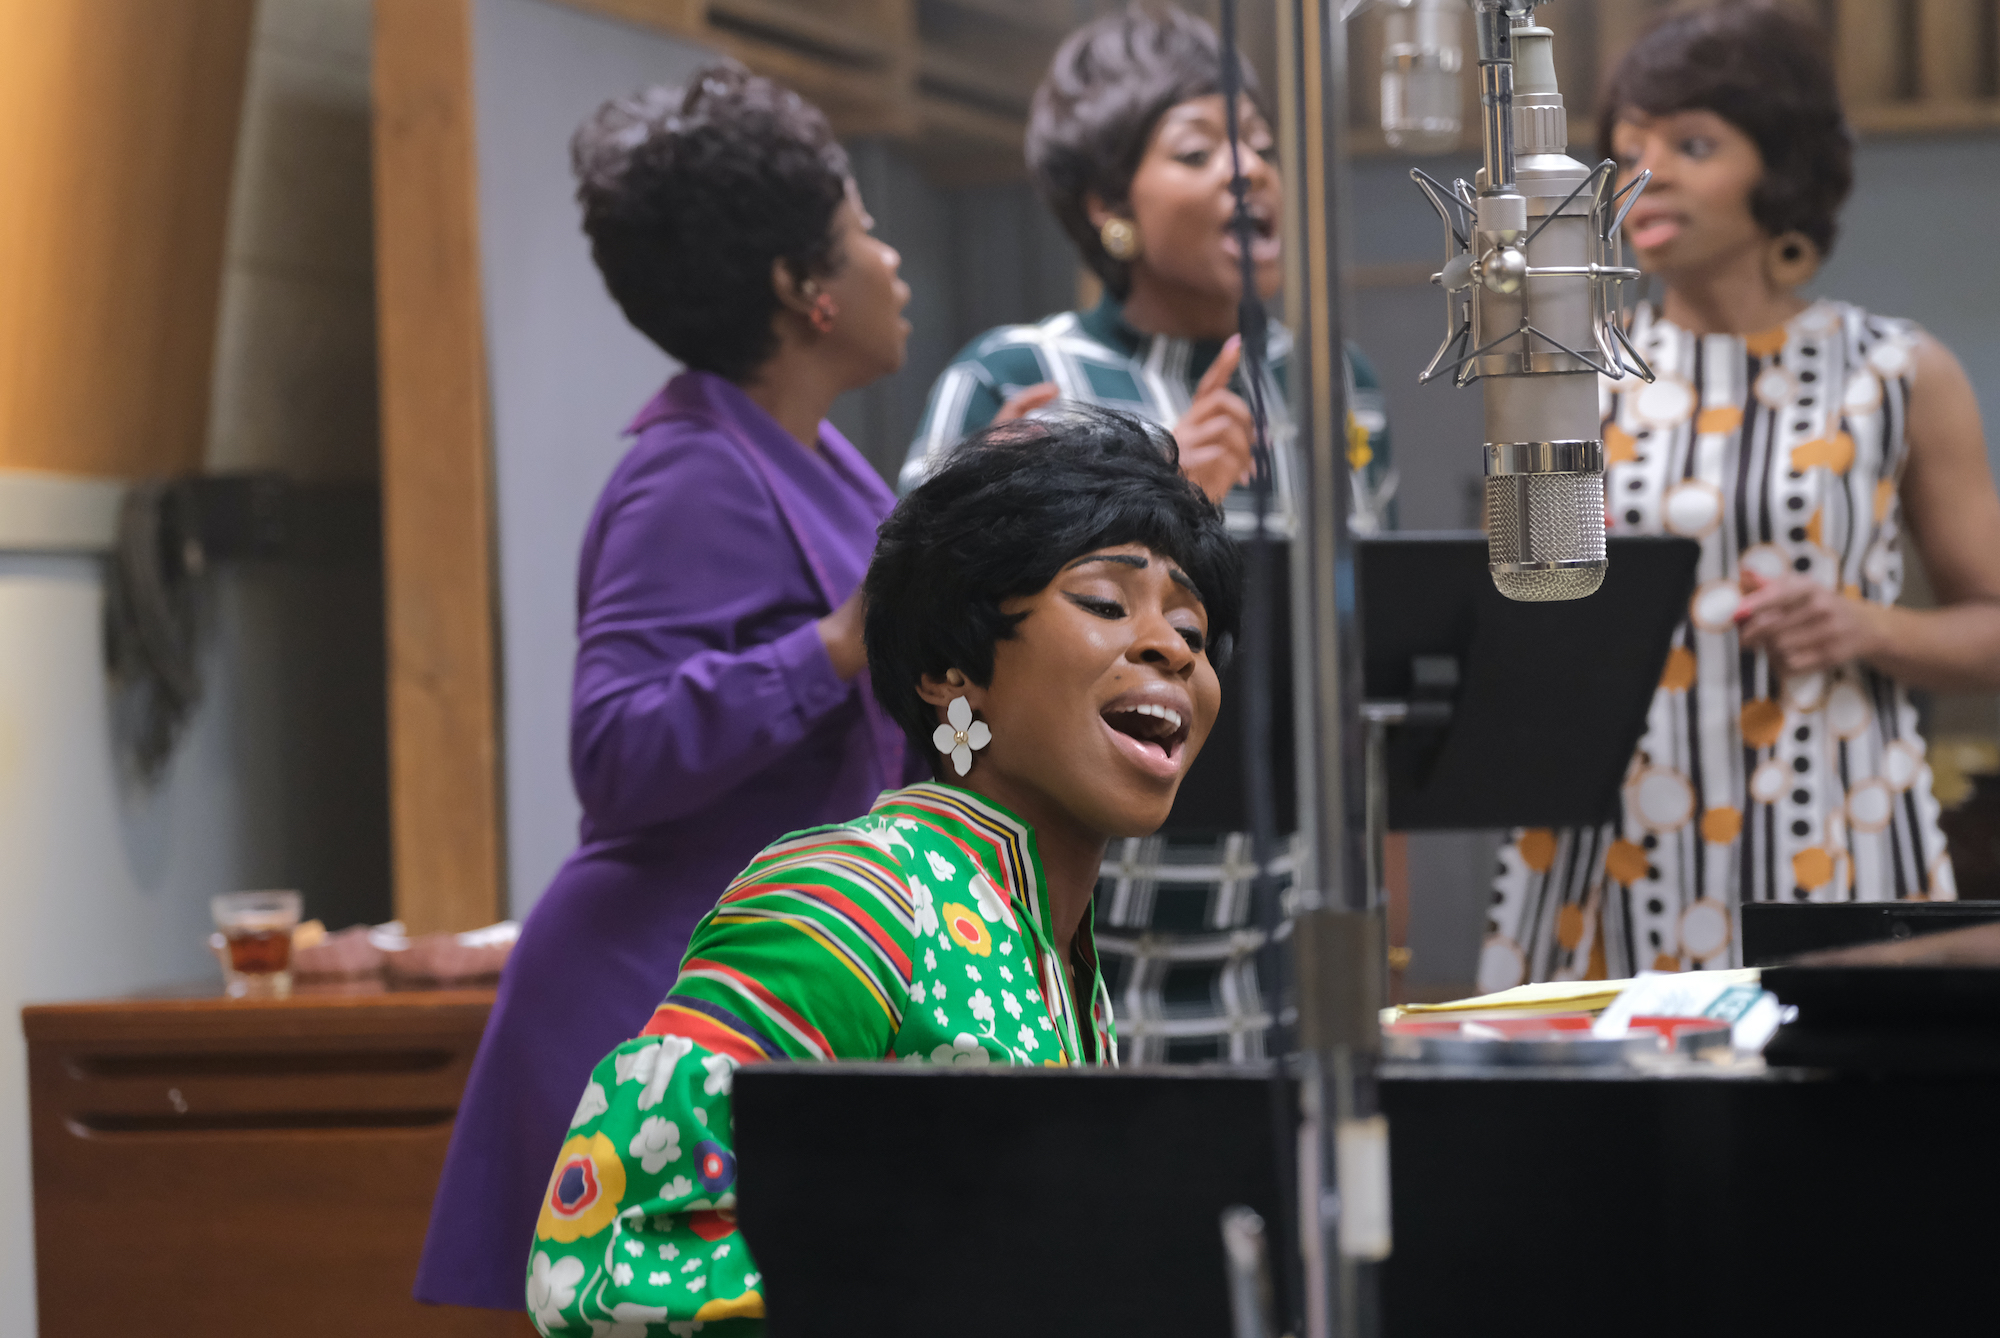 Aretha Franklin (foreground), played by Cynthia Erivo, rehearsing with backup singers (L to R) played by Kameelah Williams, Patrice Covington (as Erma Franklin) and Erika Jerry. (Credit: National Geographic/Richard DuCree)